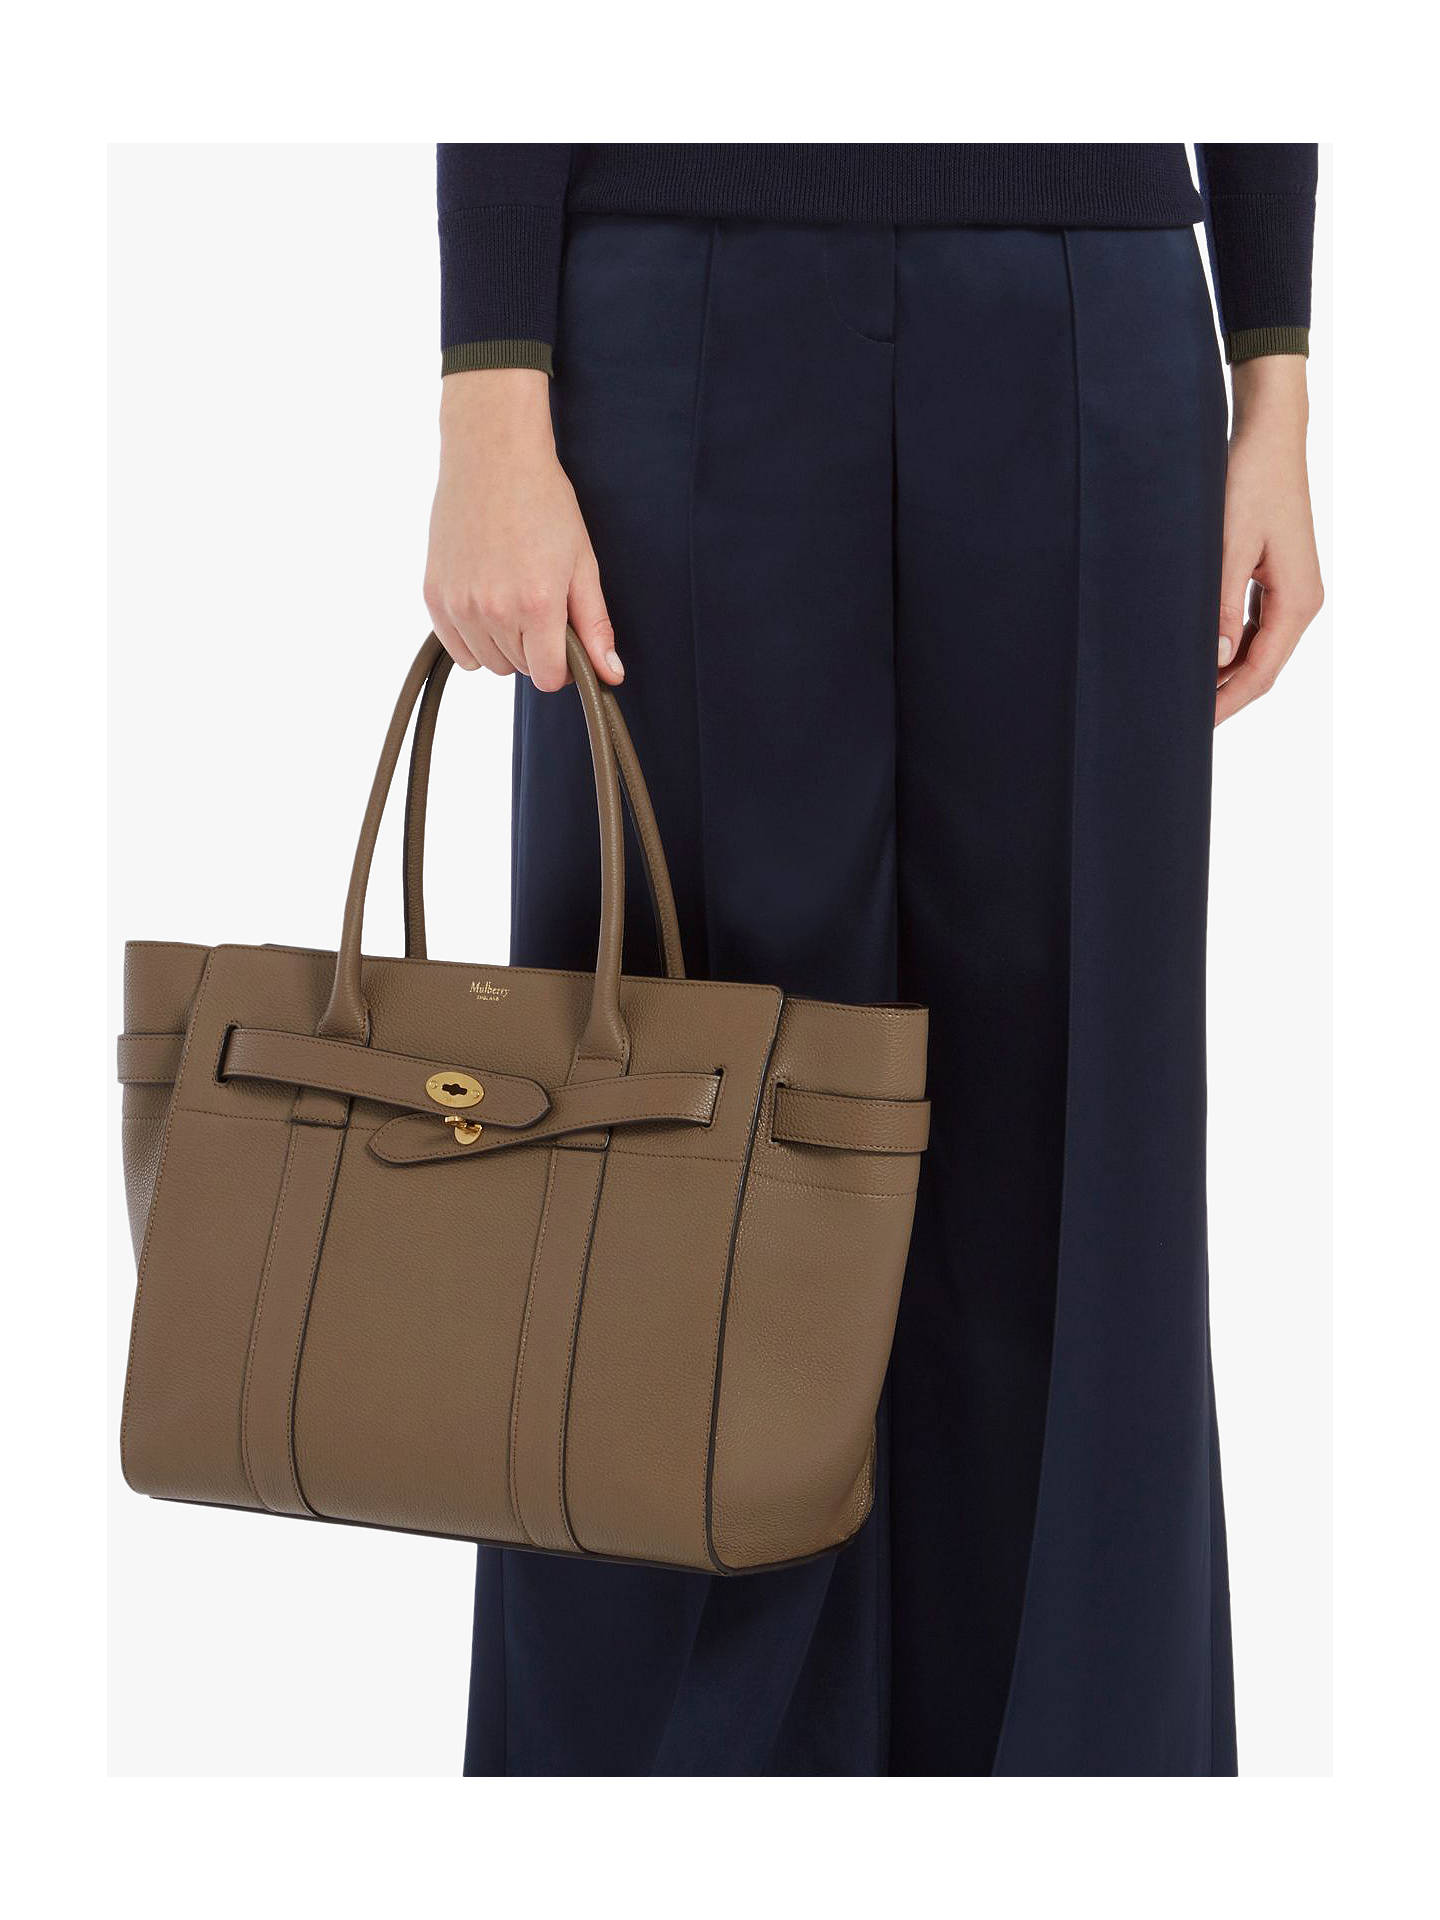 ... BuyMulberry Bayswater Zipped Small Classic Grain Leather Tote Bag, Clay  Online at johnlewis.com ... 67d607b6aa